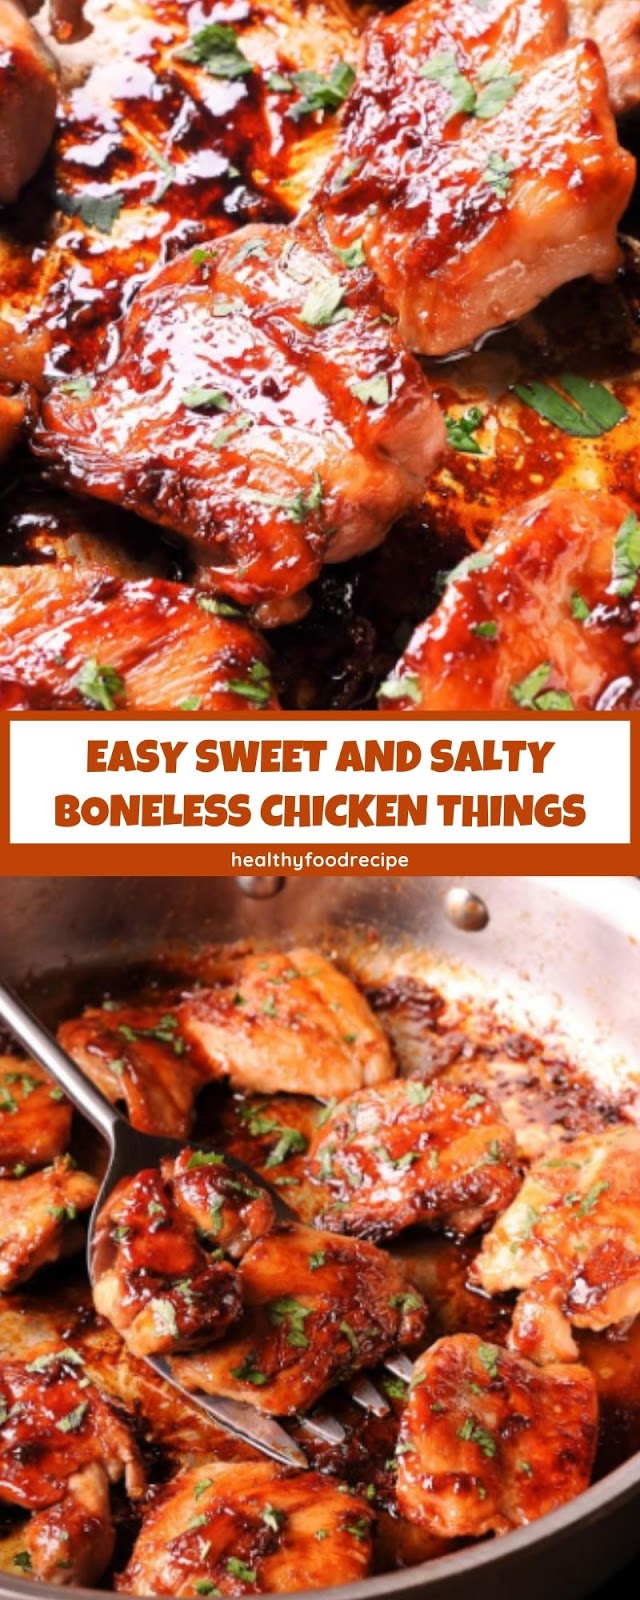 EASY SWEET AND SALTY BONELESS CHICKEN THINGS